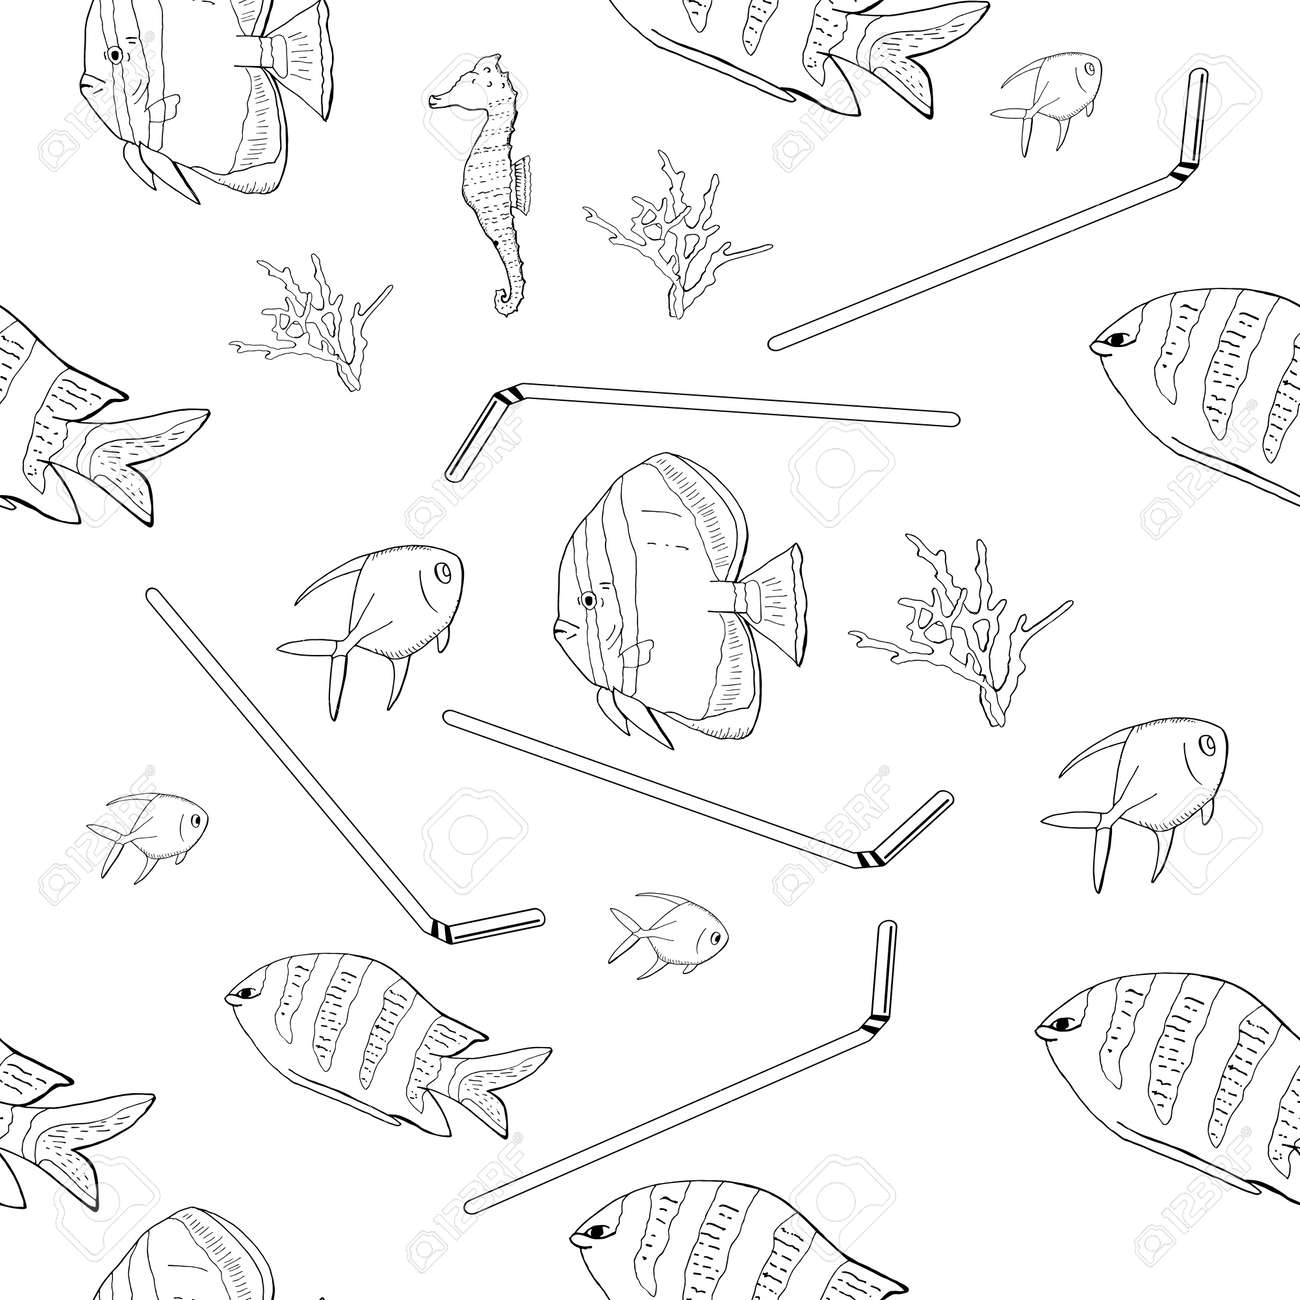 Hand drawn outline. Vector seamless pattern with garbage, plastic straws, fishes, bag, seaweed, plastic utensils. The concept of environmental pollution. - 160622855